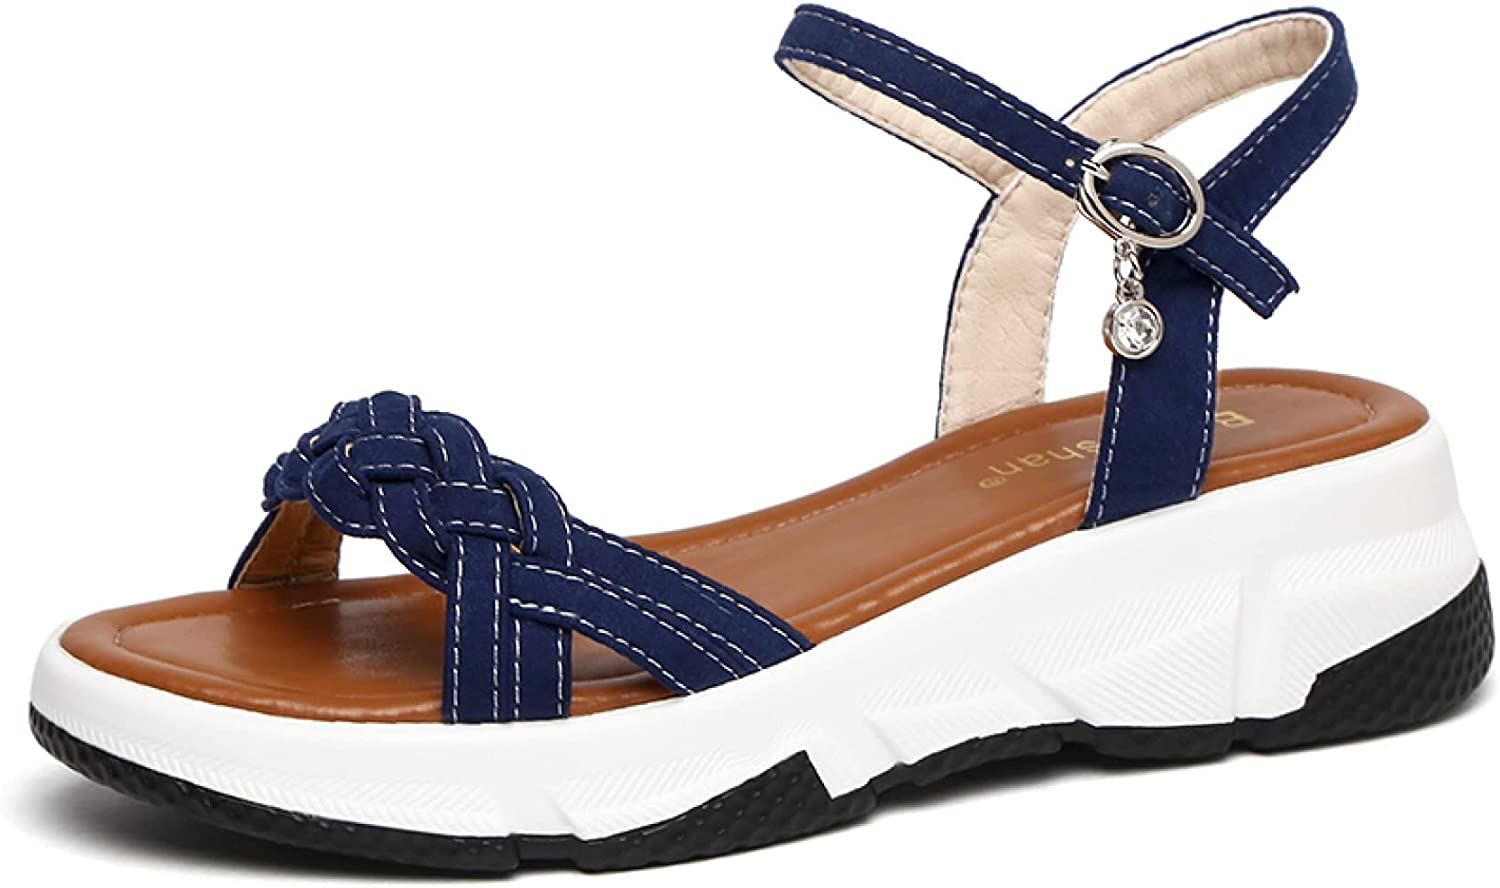 Woman Rest Weekly update Outdoor Open Toe Simple Vamp An Braided Phoenix Mall Ankle Strappy